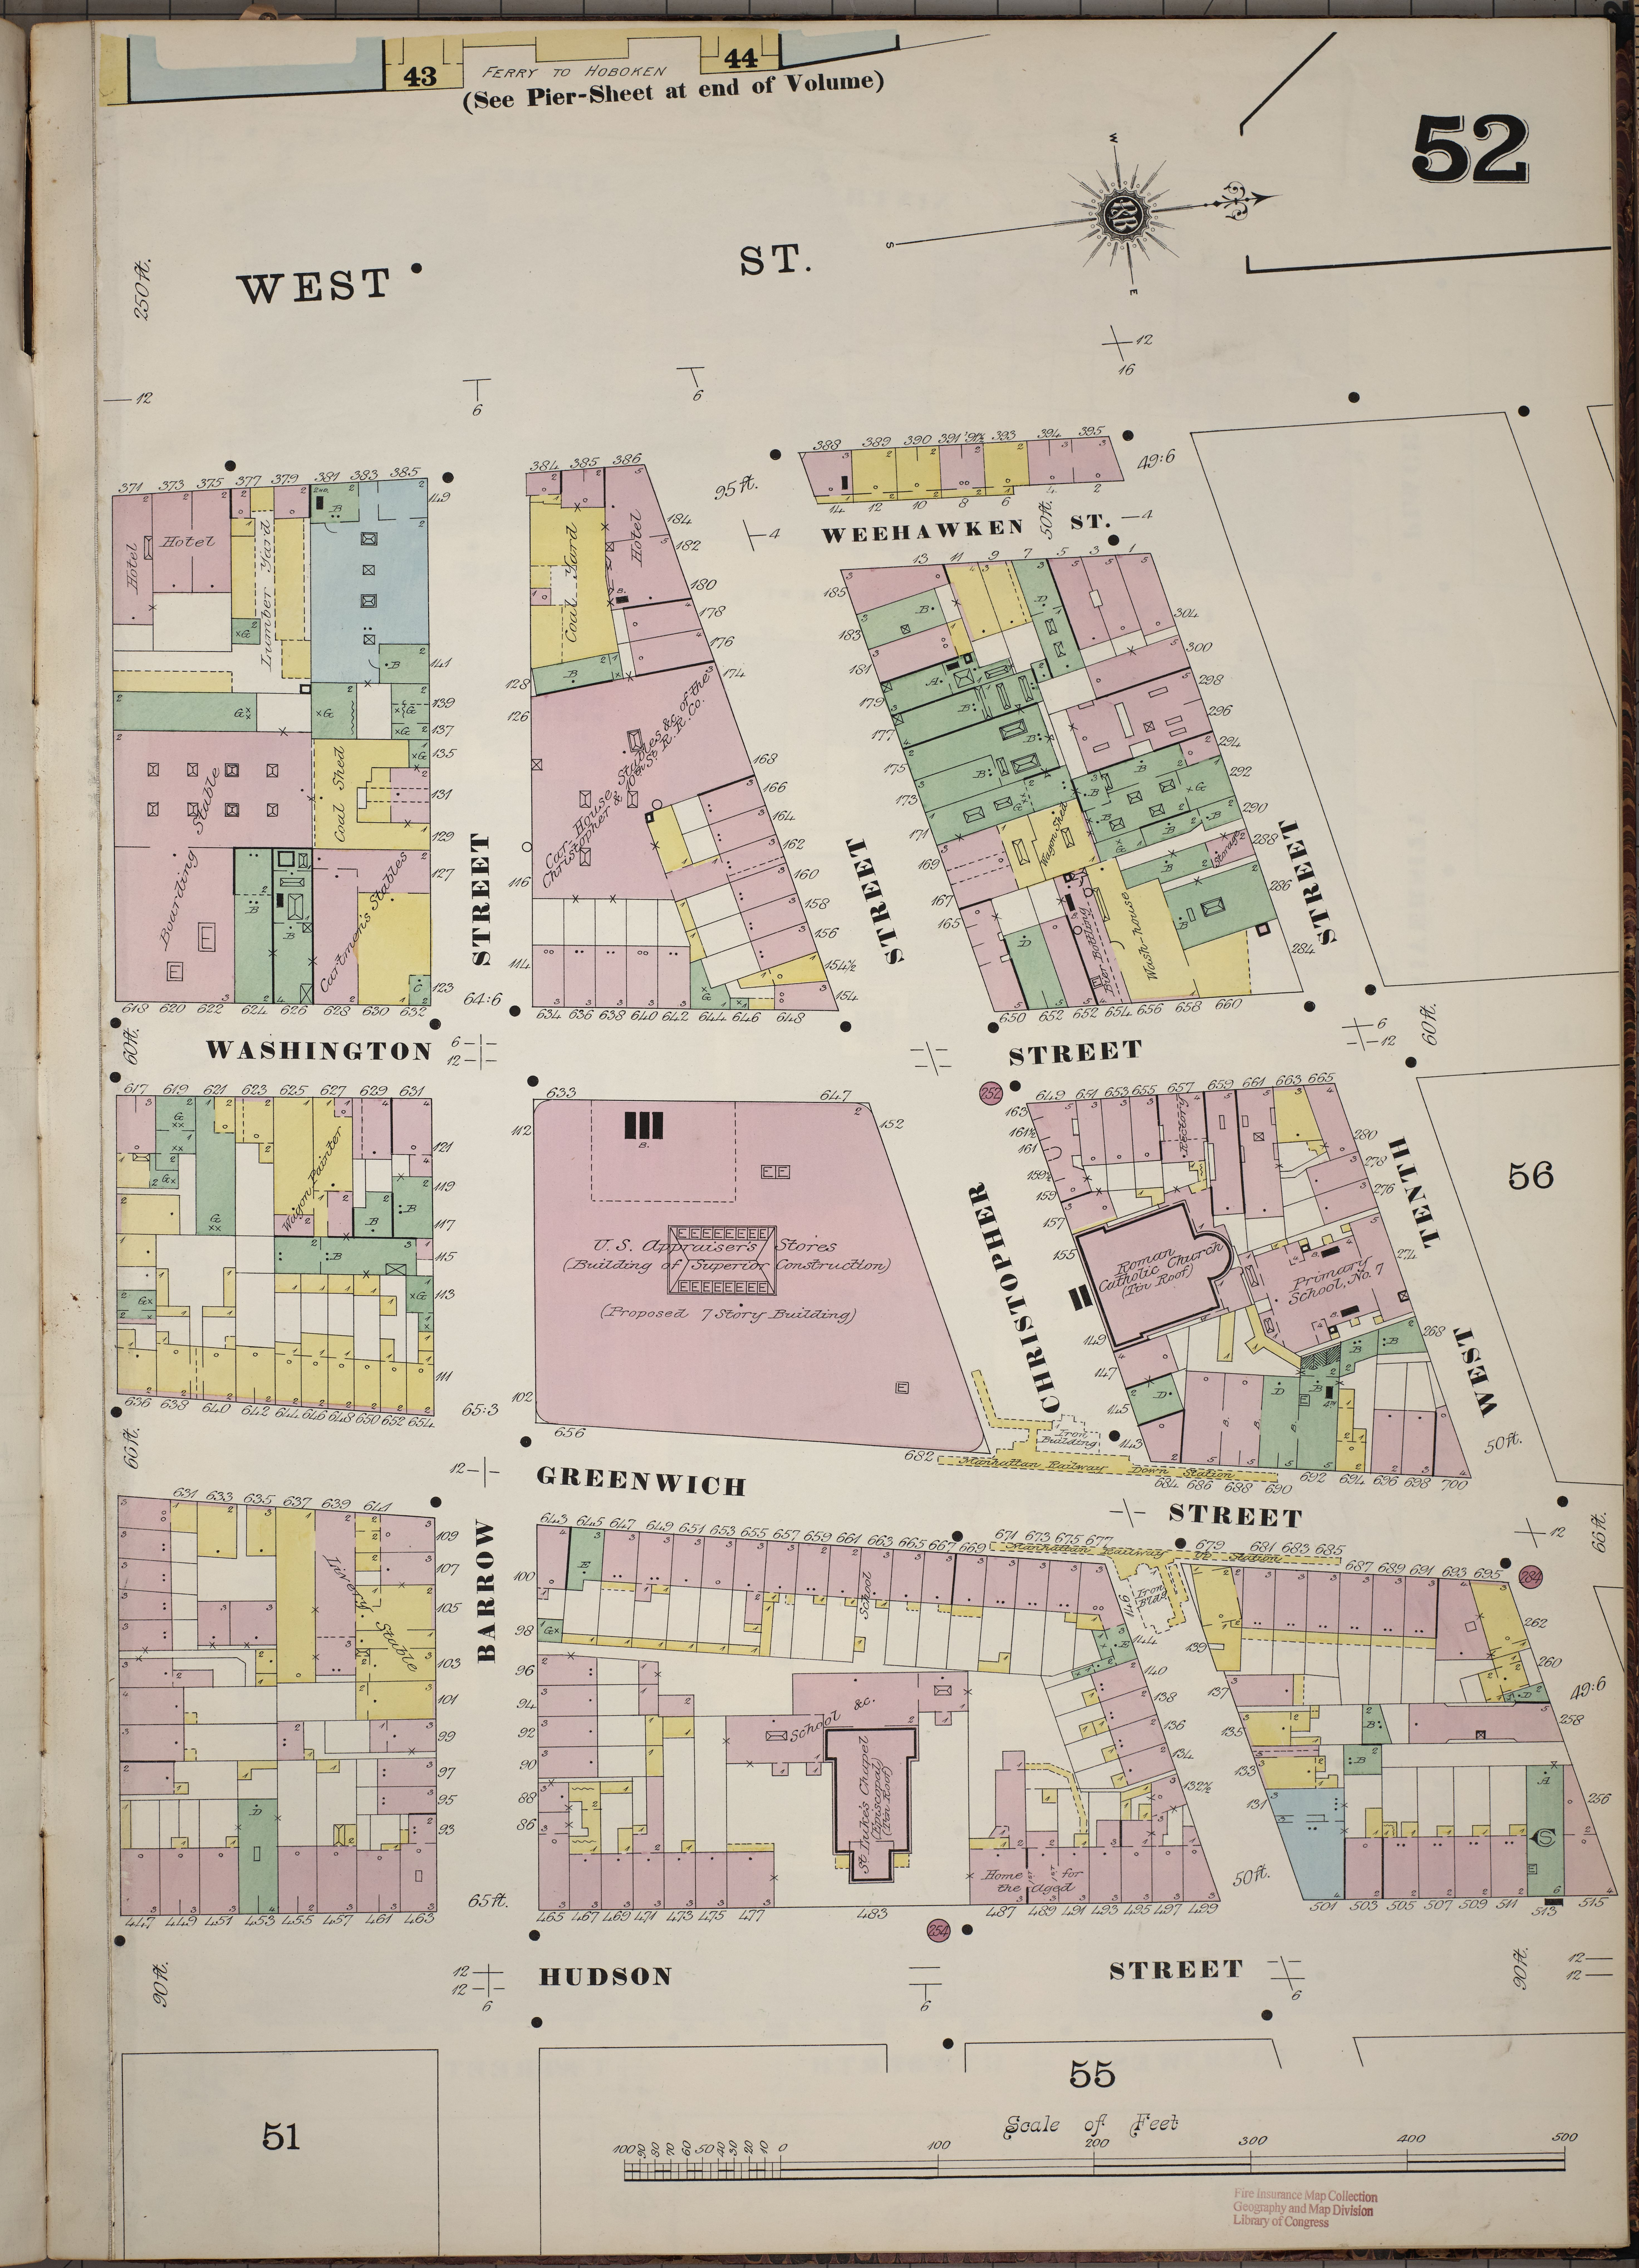 File:Sanborn Fire Insurance Map from New York, Bronx, Kings ... on map of tillson ny, map of paul smiths ny, map of jackson ny, map of appleton ny, map of north river ny, map of south otselic ny, map of strykersville ny, map of nelson ny, map of le roy ny, map of south colton ny, map of tioga ny, map of kingsbury ny, map of kent ny, map of winthrop ny, map of glenfield ny, map of dickinson ny, map of afton ny, map of pine island ny, map of vernon center ny, map of scipio center ny,